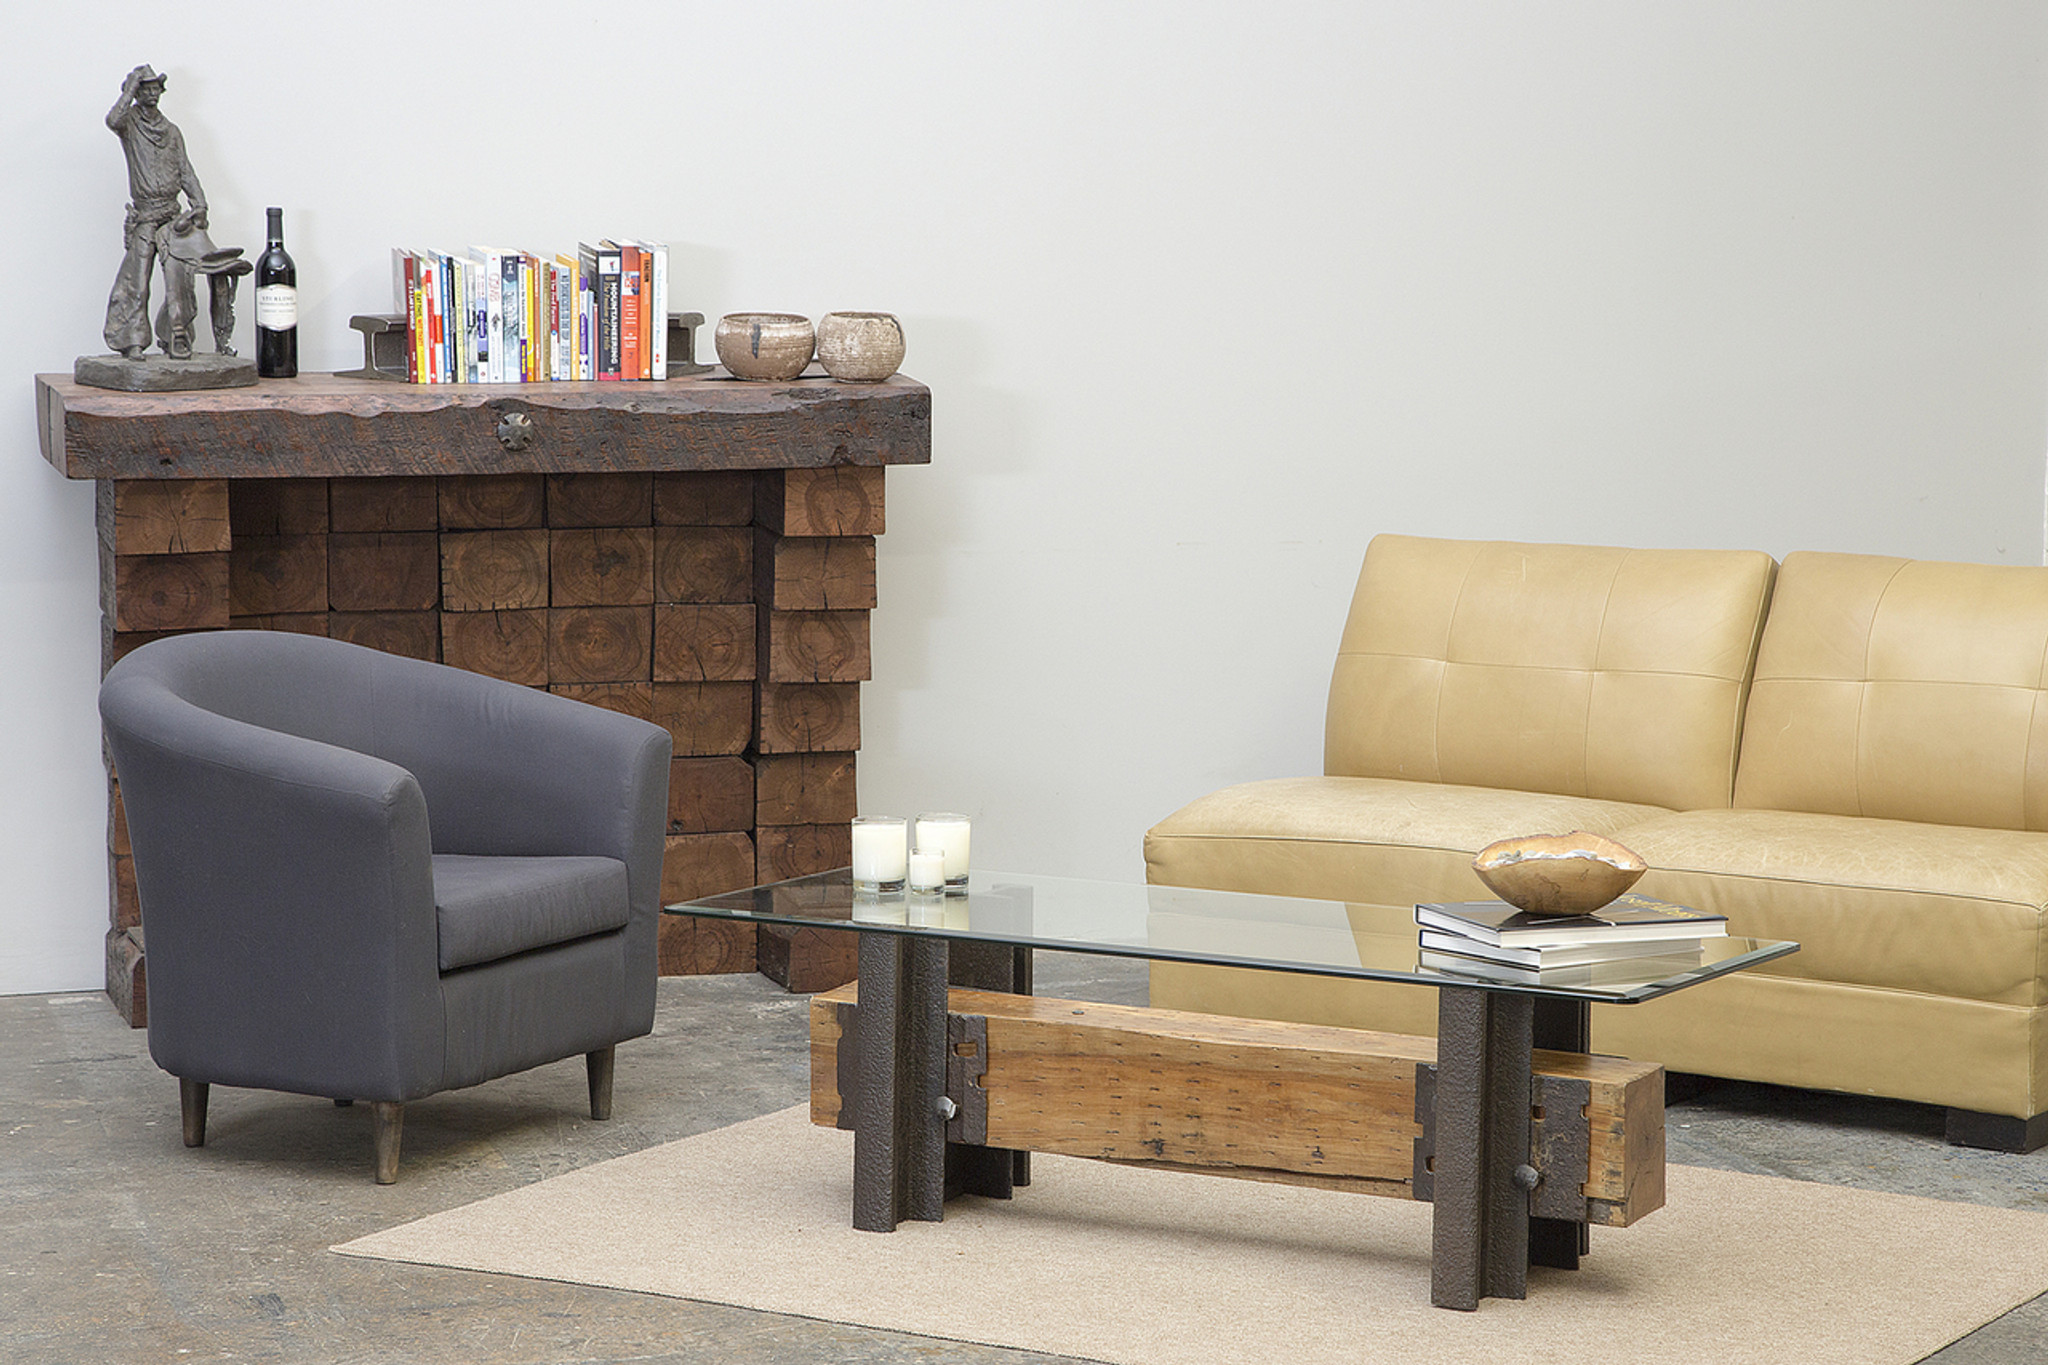 stickley style modern coffee table design from local maple timber and steel reclaimed